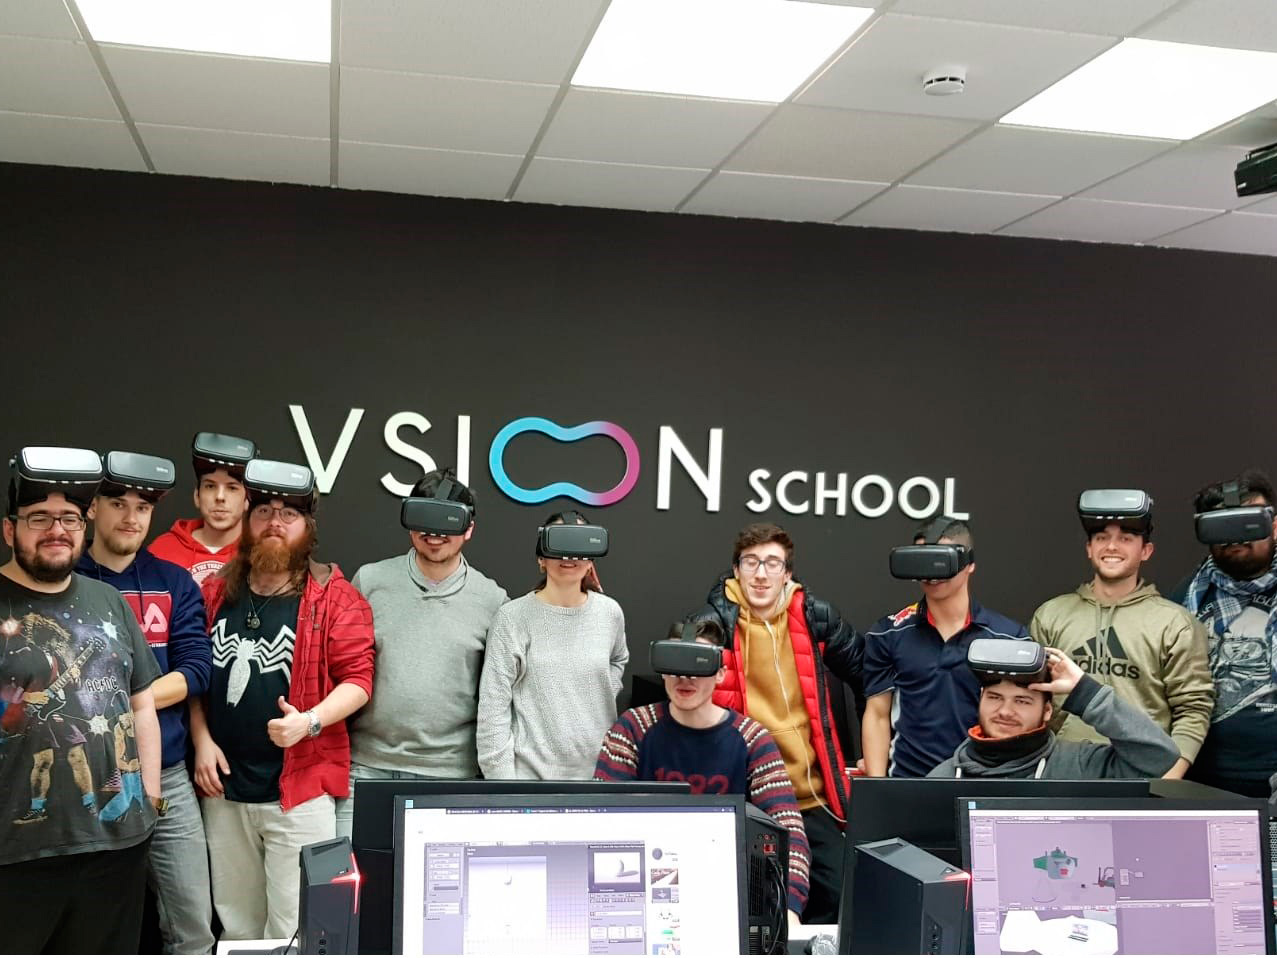 Vsion Studio imparte formación de Realidad Virtual en sus aulas de Vsion School